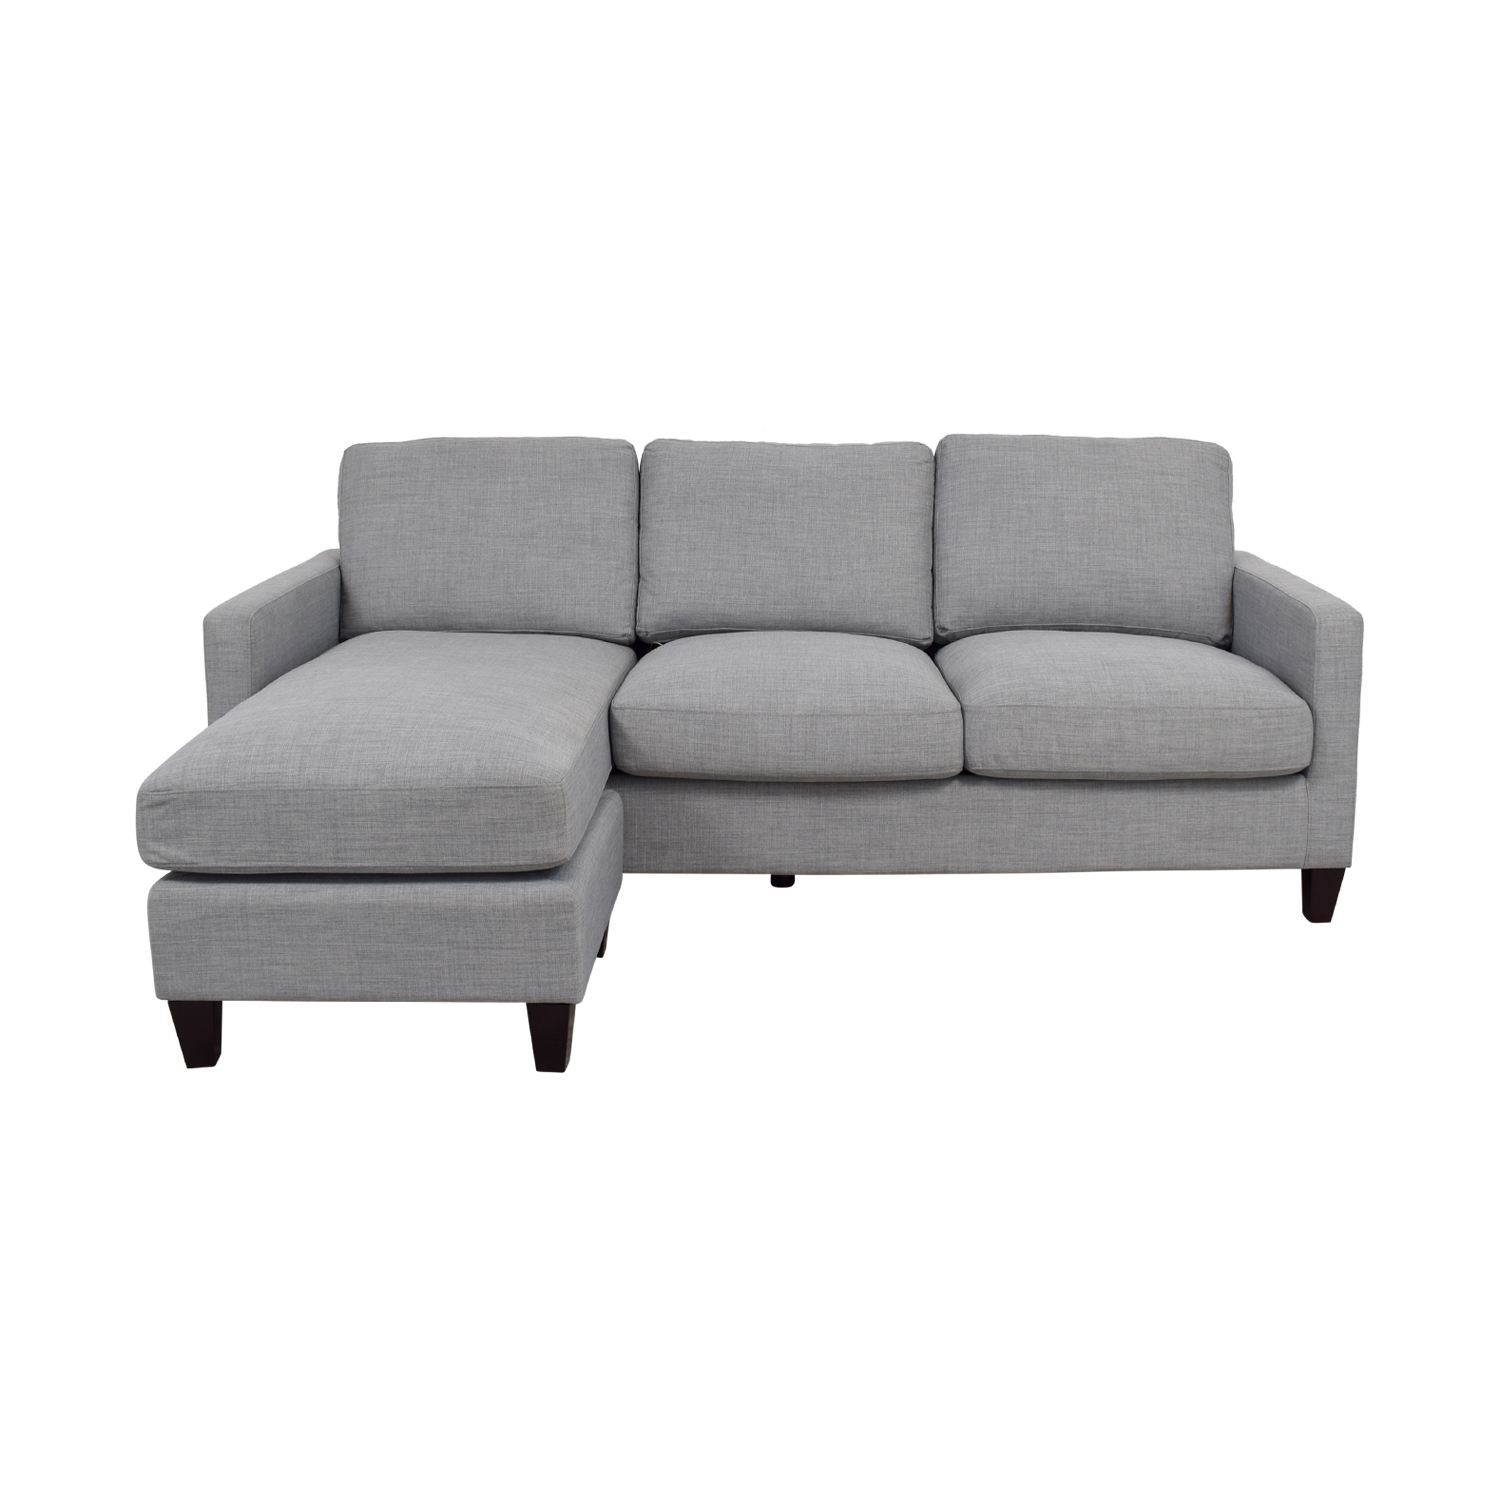 furniture charcoal concept gray sectional sofath reversible sofa with com piece divano amazon picture chaise sale light roma grey fantastic for